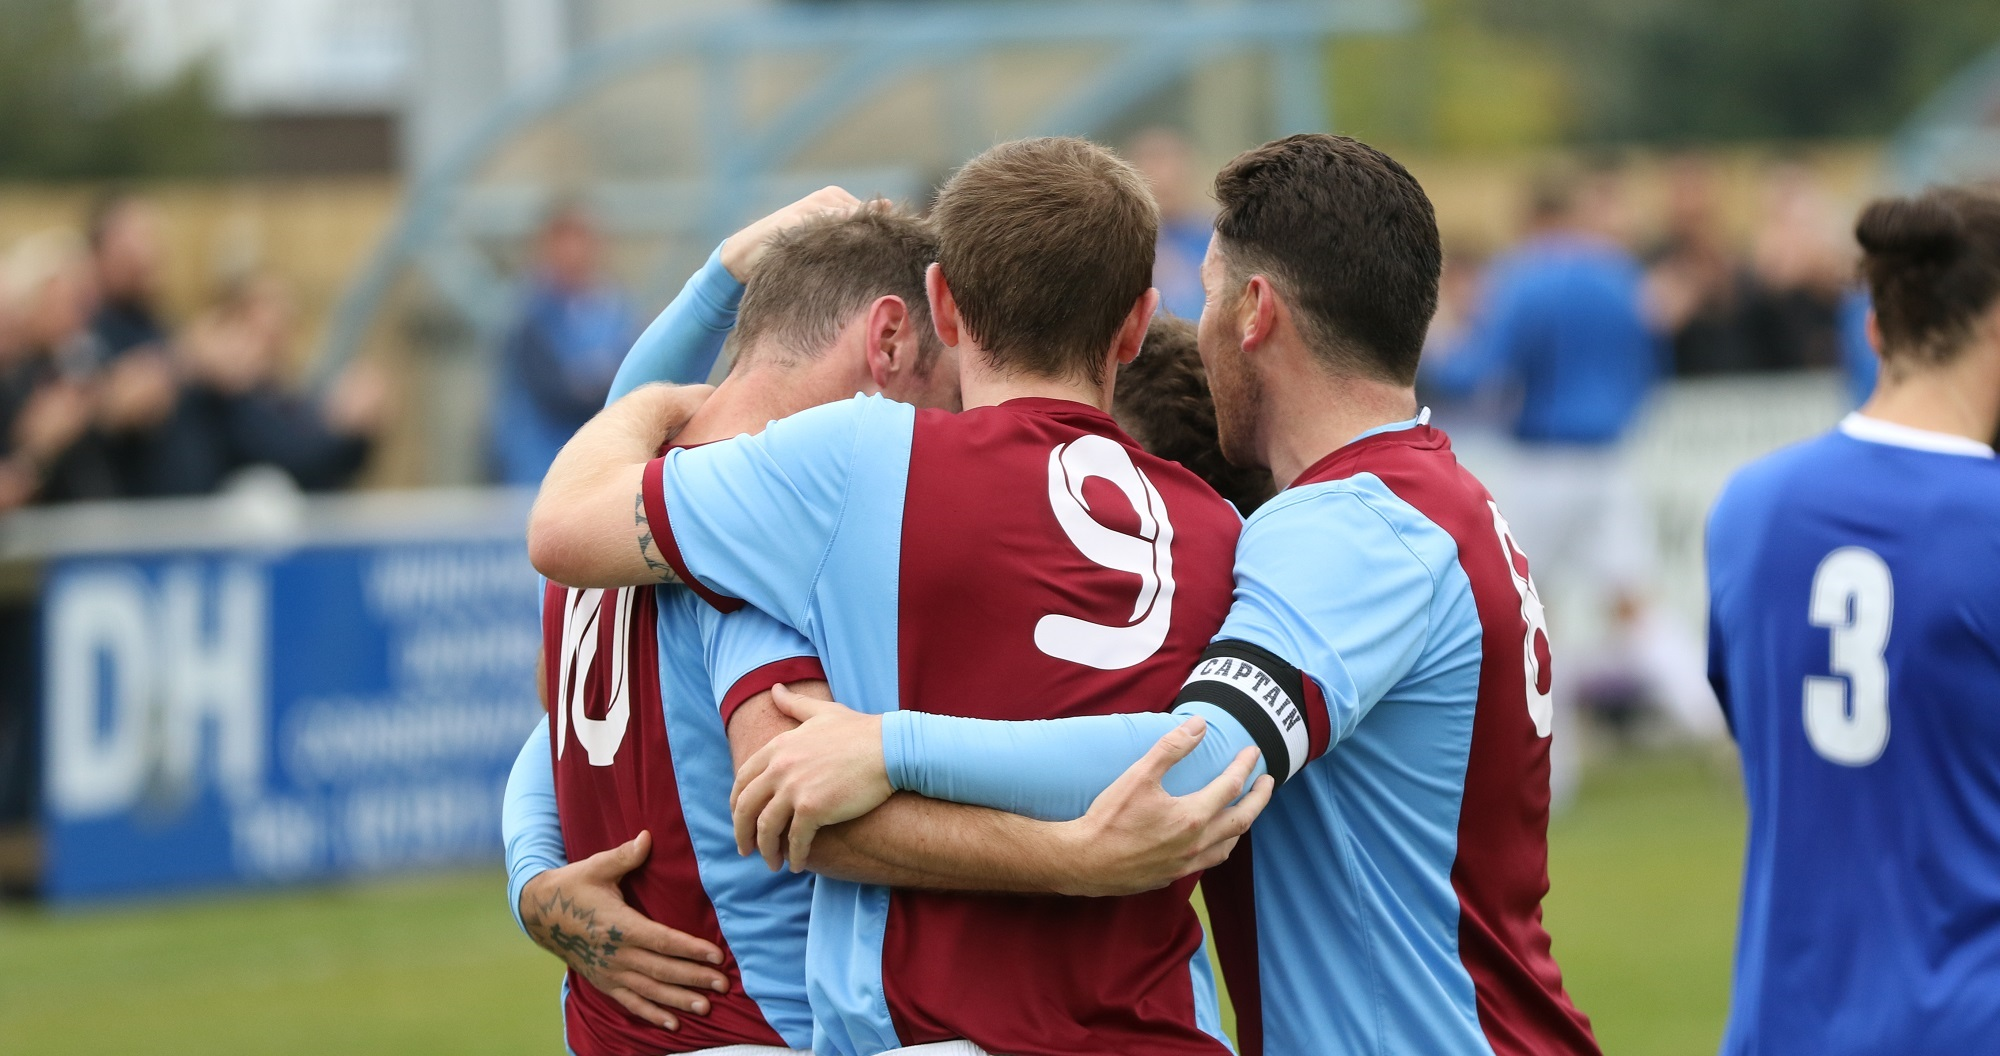 HIGHLIGHTS: South Shields 2-1 Washington